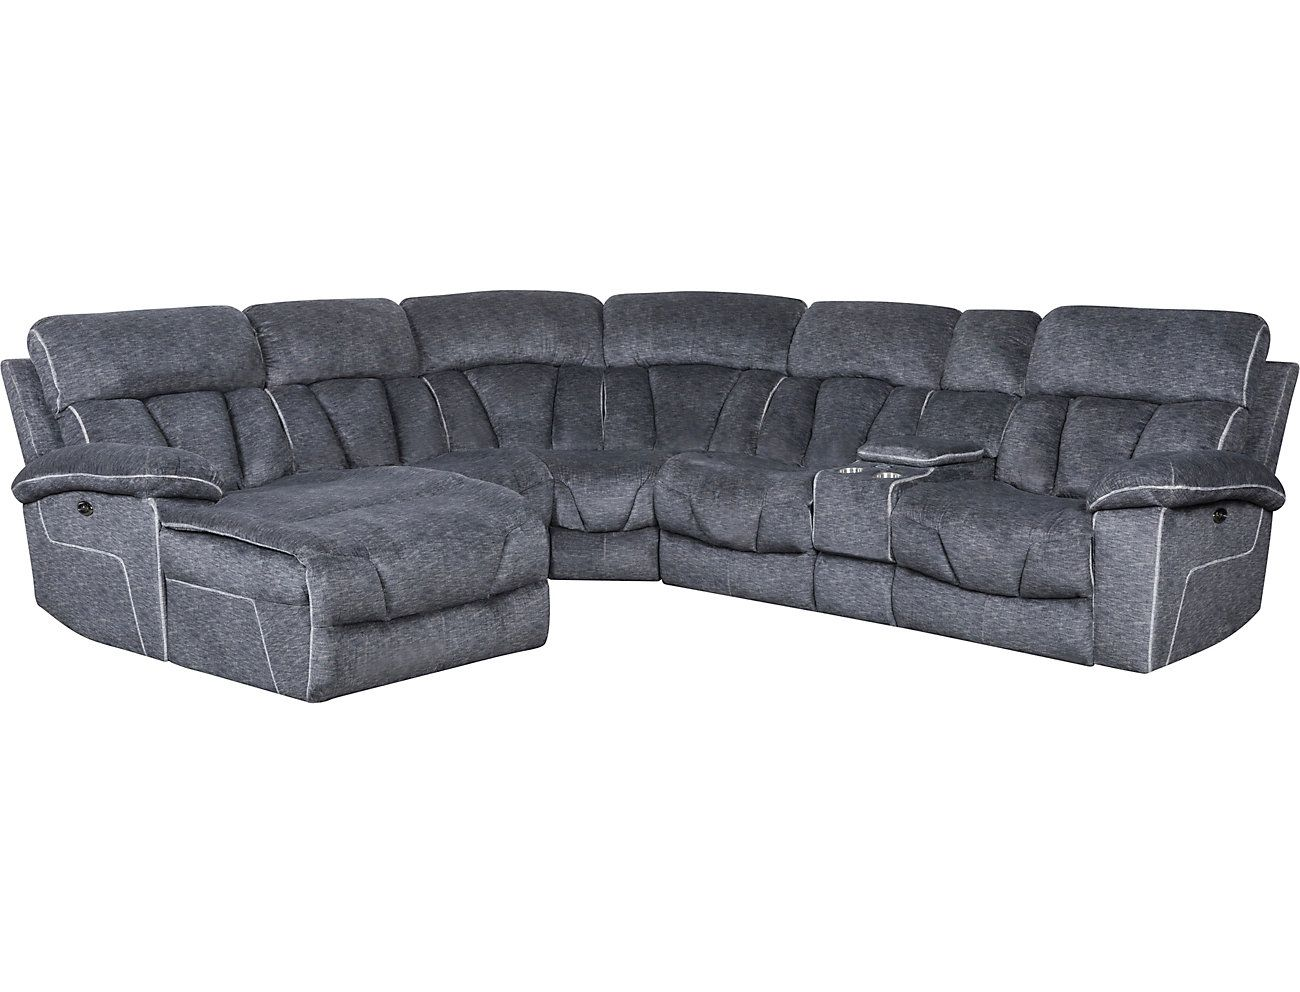 Outstanding Gladiator Charcoal 6 Piece Power Reclining Sectional With Uwap Interior Chair Design Uwaporg